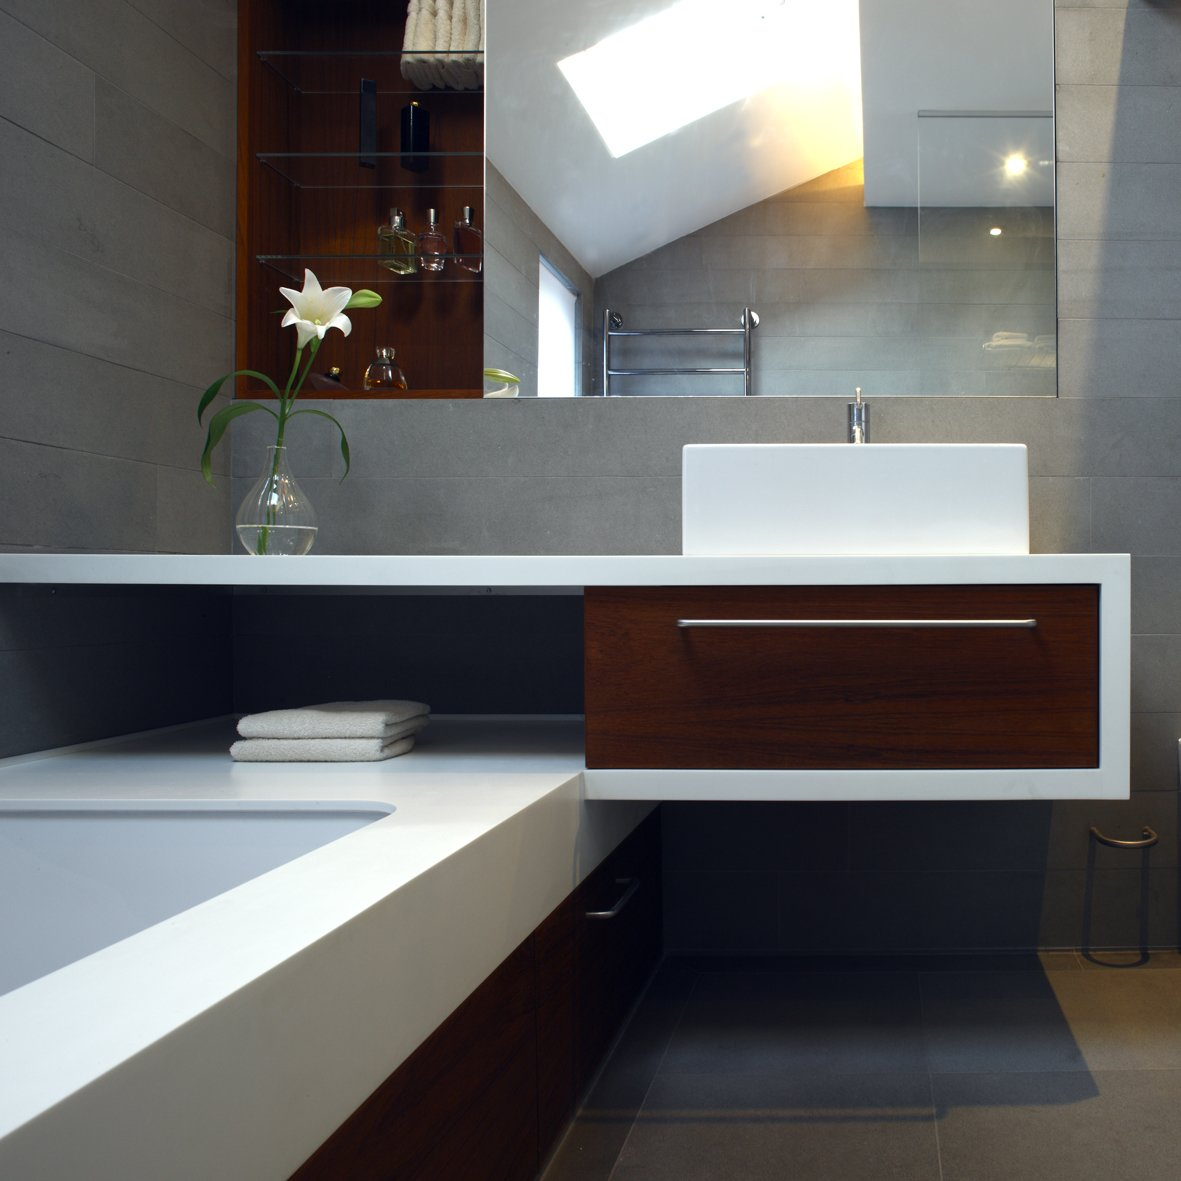 Tagged: Bath Room, Vessel Sink, Quartzite Counter, Concrete Floor, and Undermount Tub.  Elm Grove by Thompson + Baroni